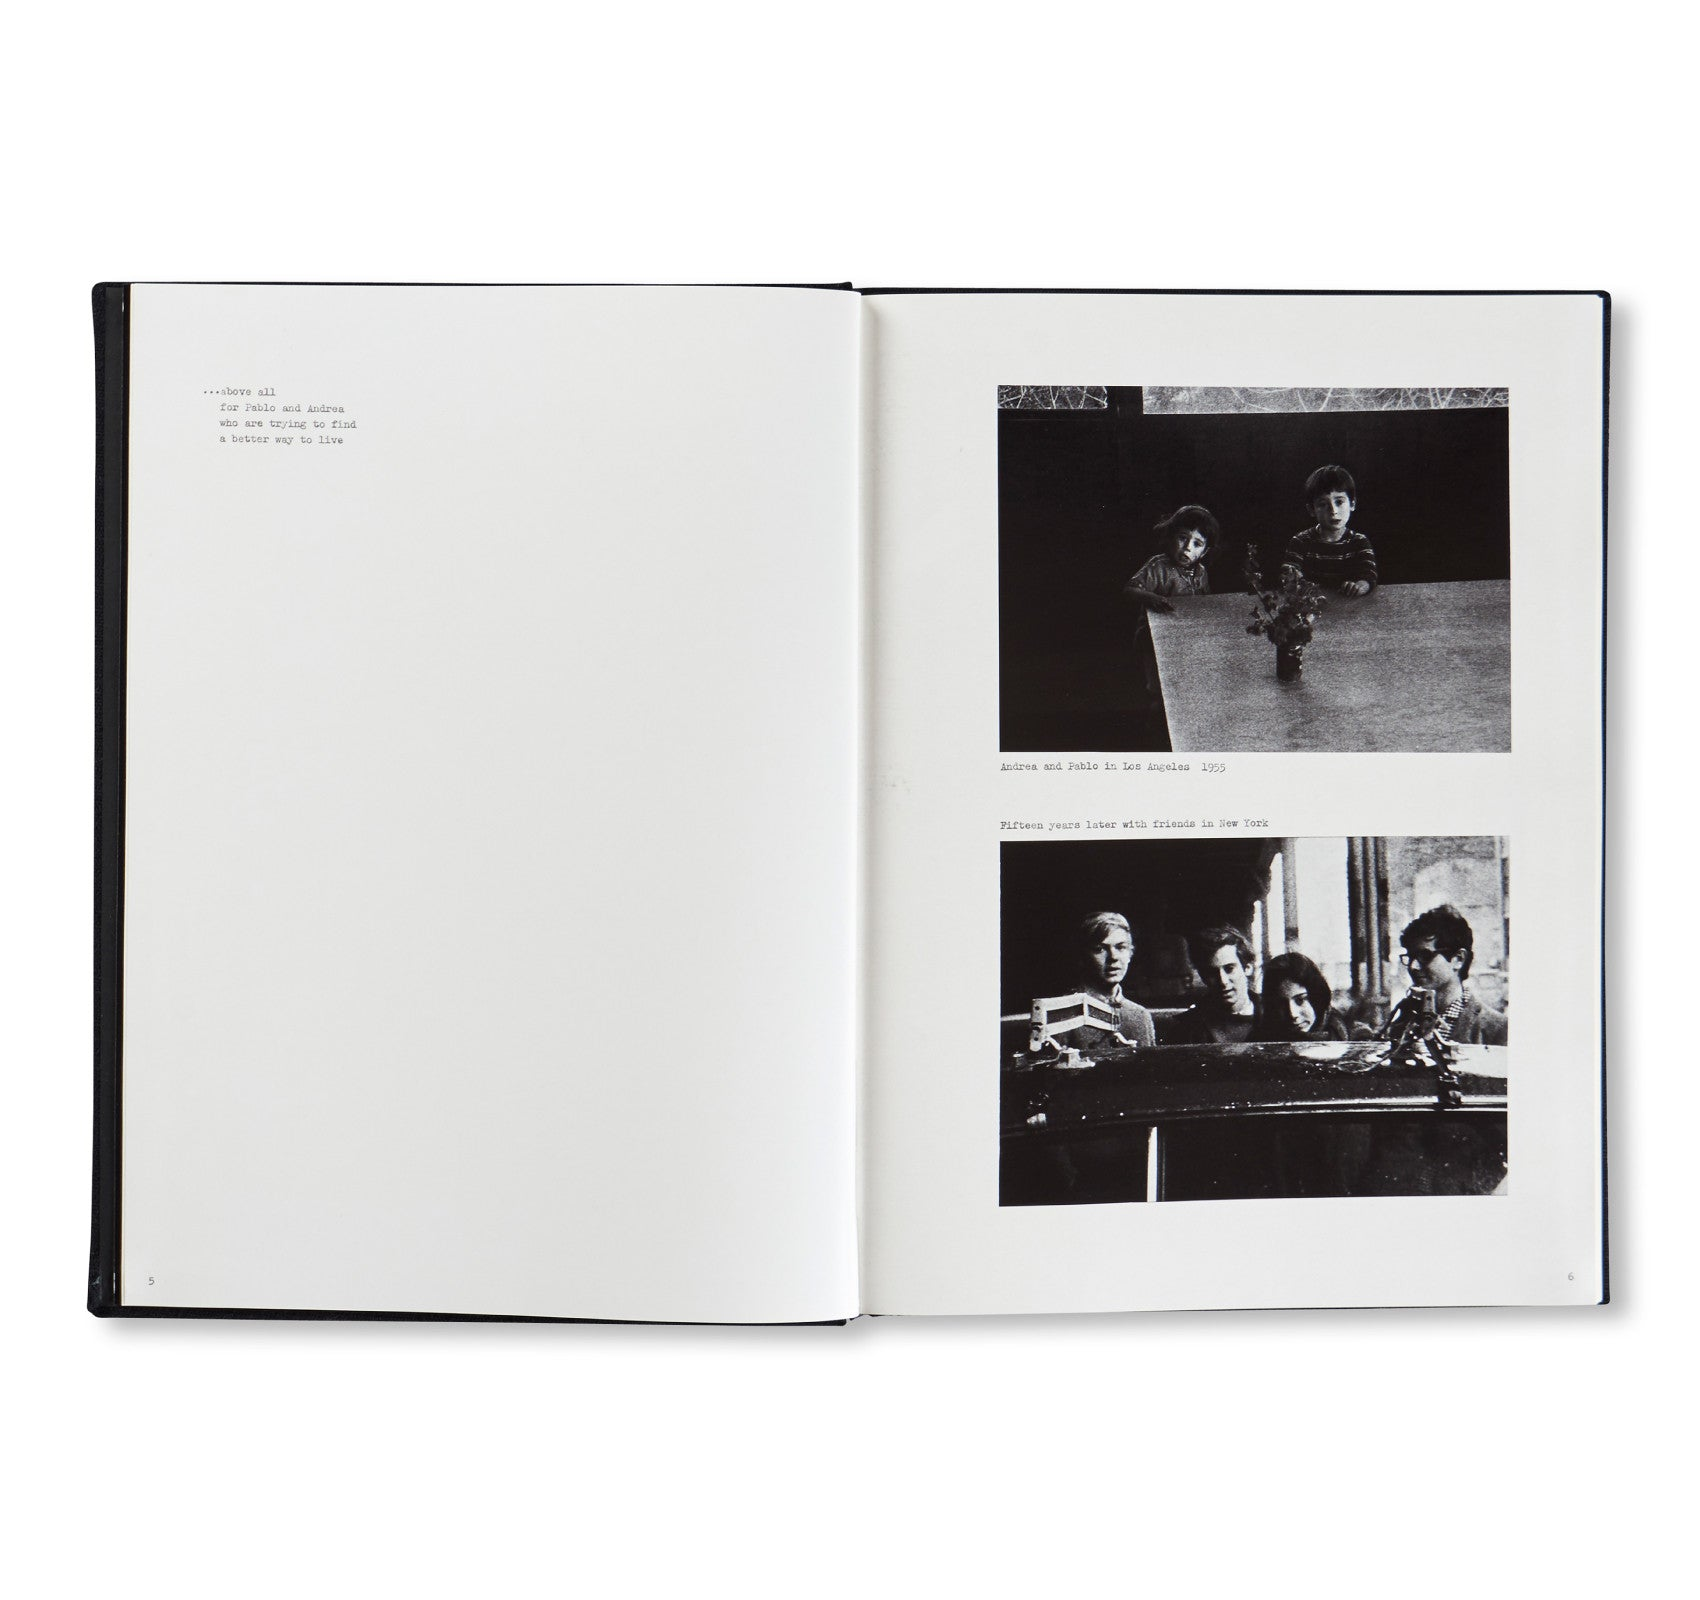 THE LINES OF MY HAND by Robert Frank